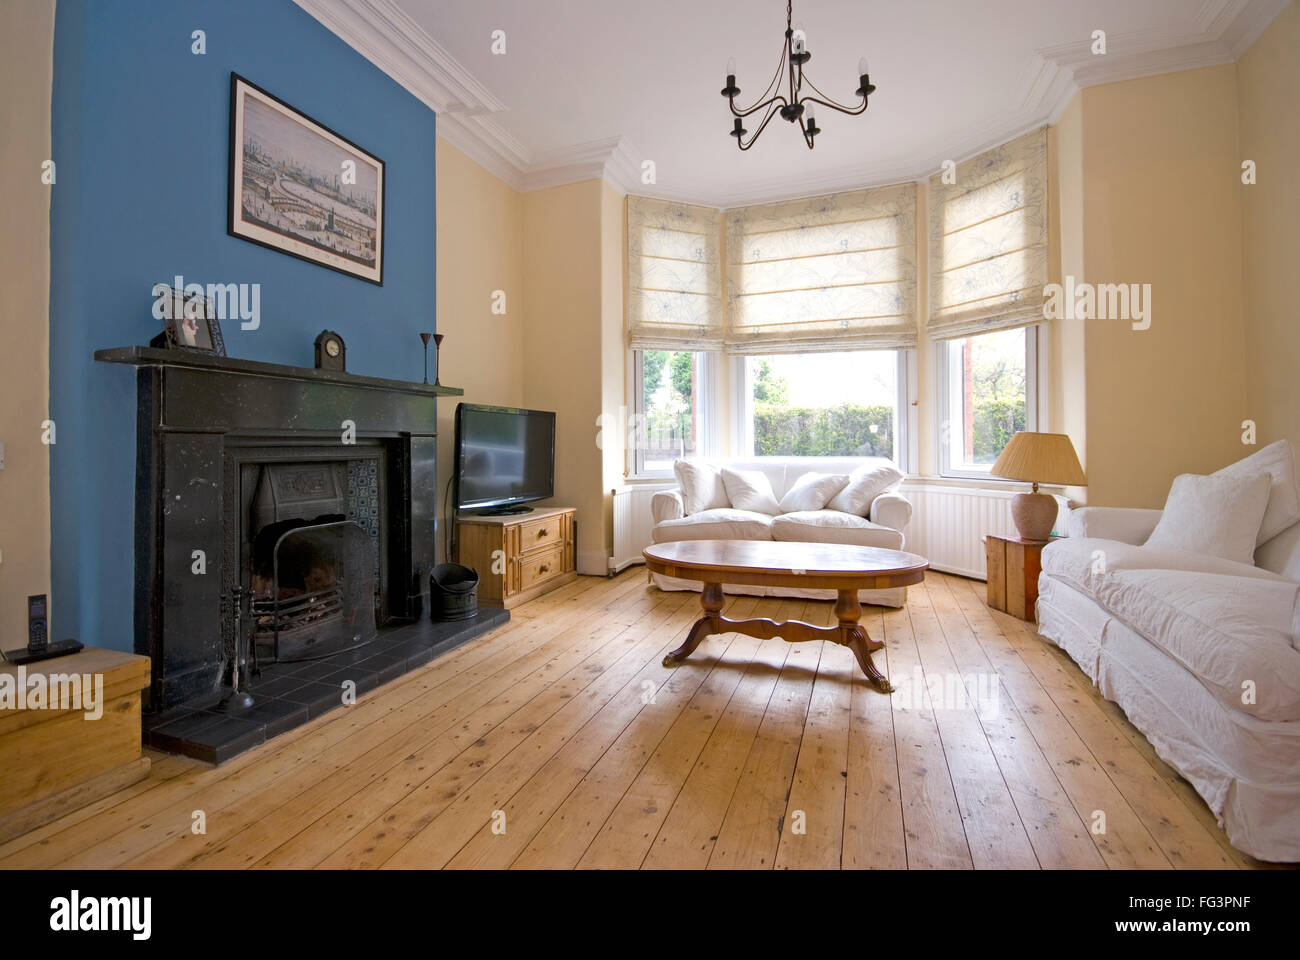 Sitting Room In Victorian Town House With Bay Windows Stock Photo Alamy